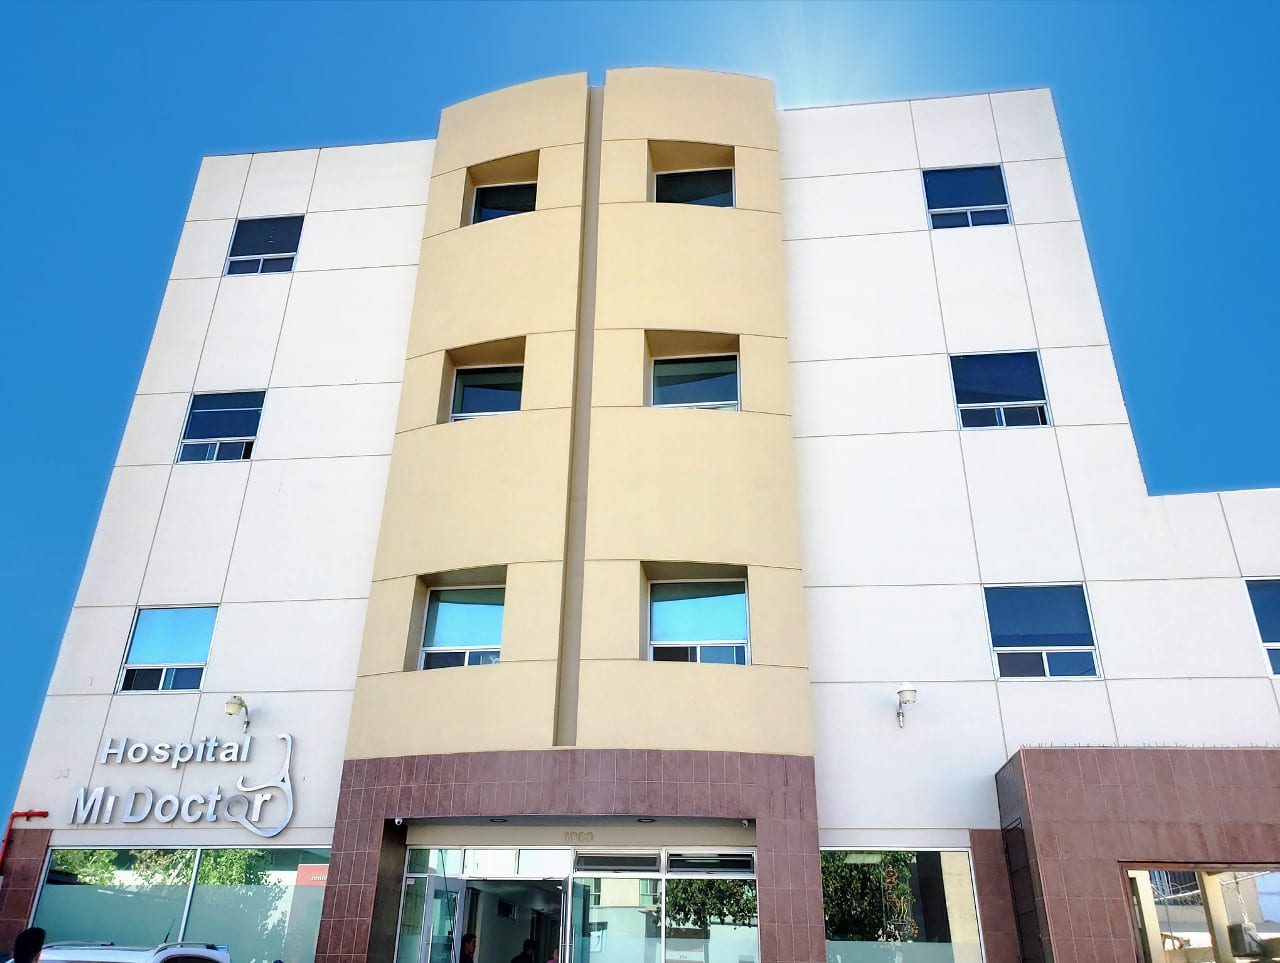 Hospital Mi Doctor in Tijuana Mexico - Mexico Bariatric Surgical Center